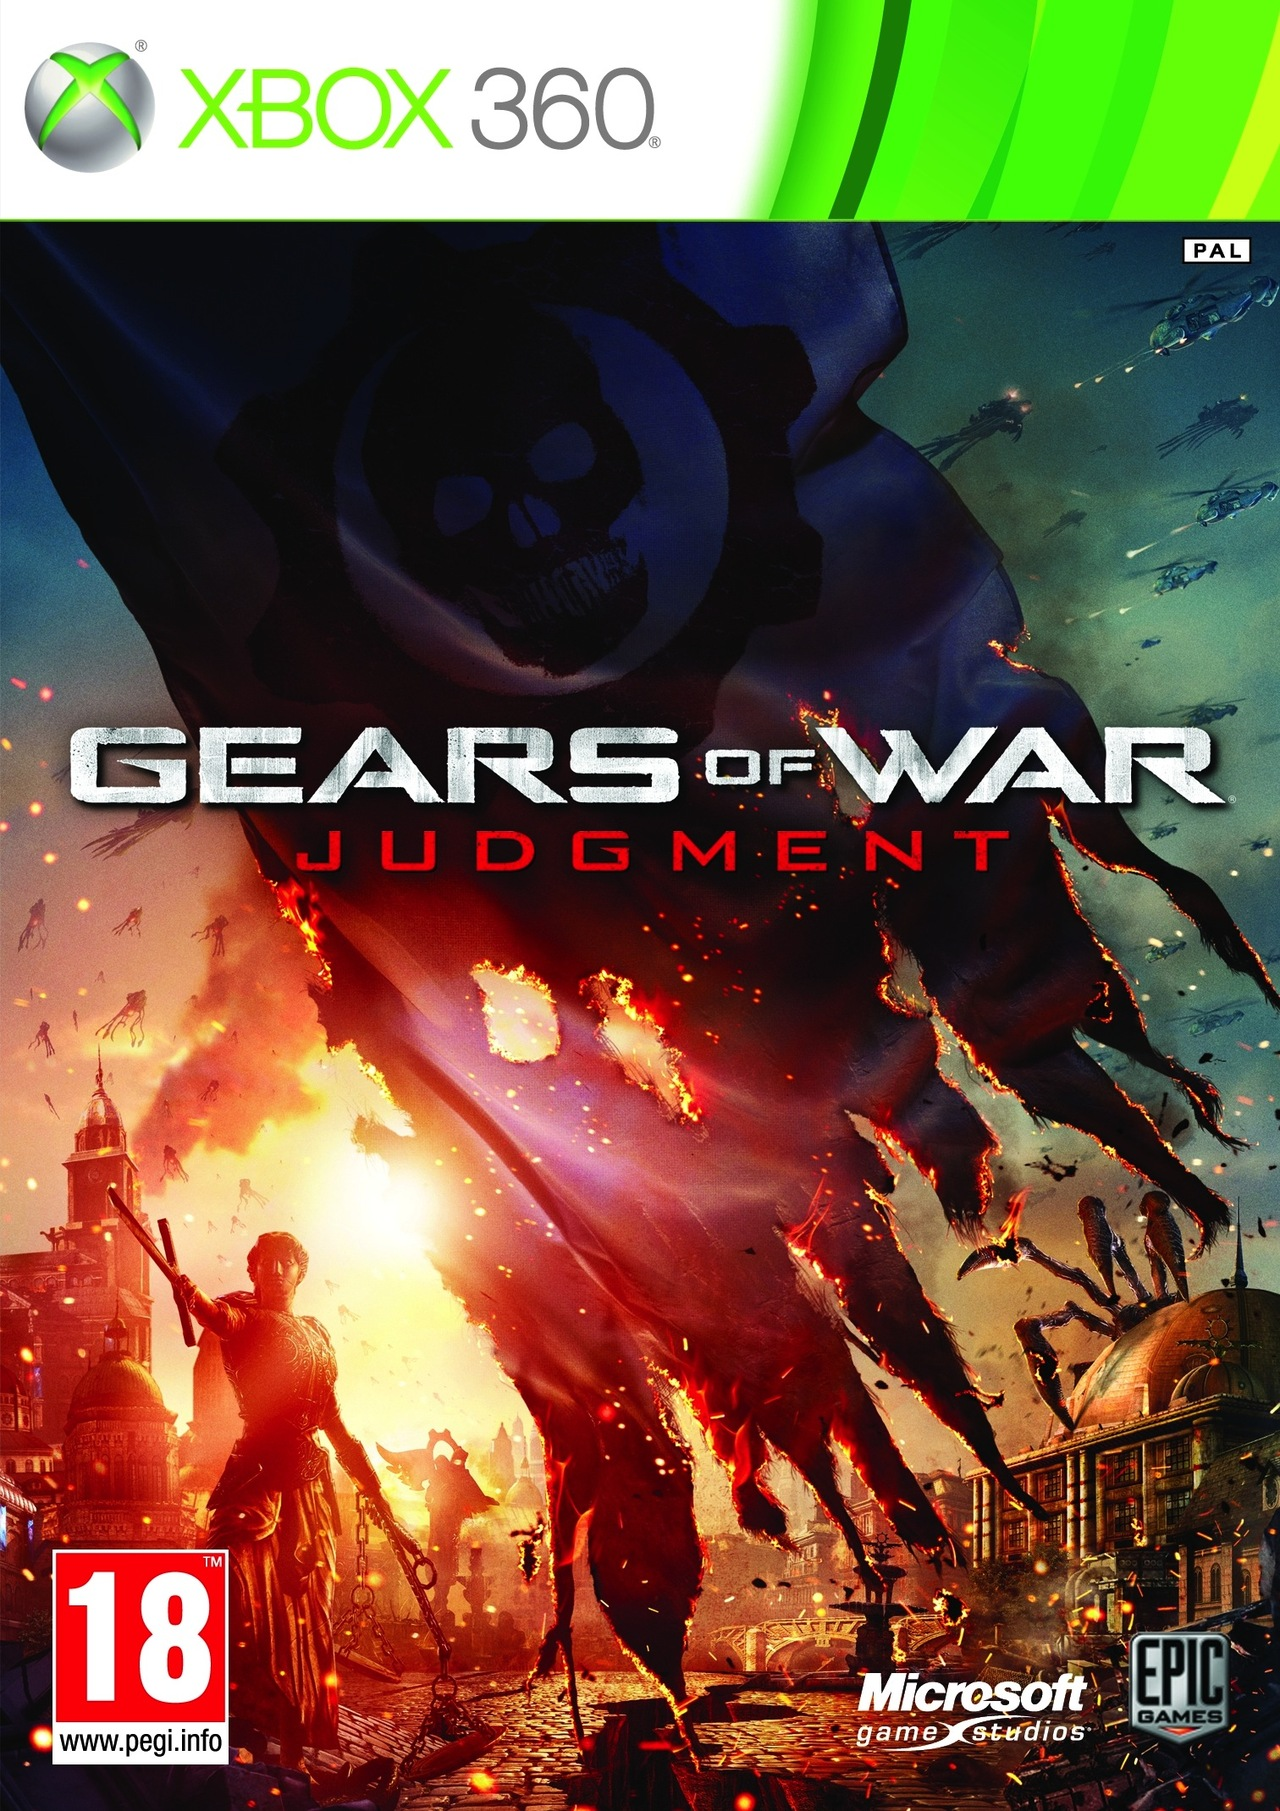 Gears of War Judgment XBOX360 [FREE] [MULTI]